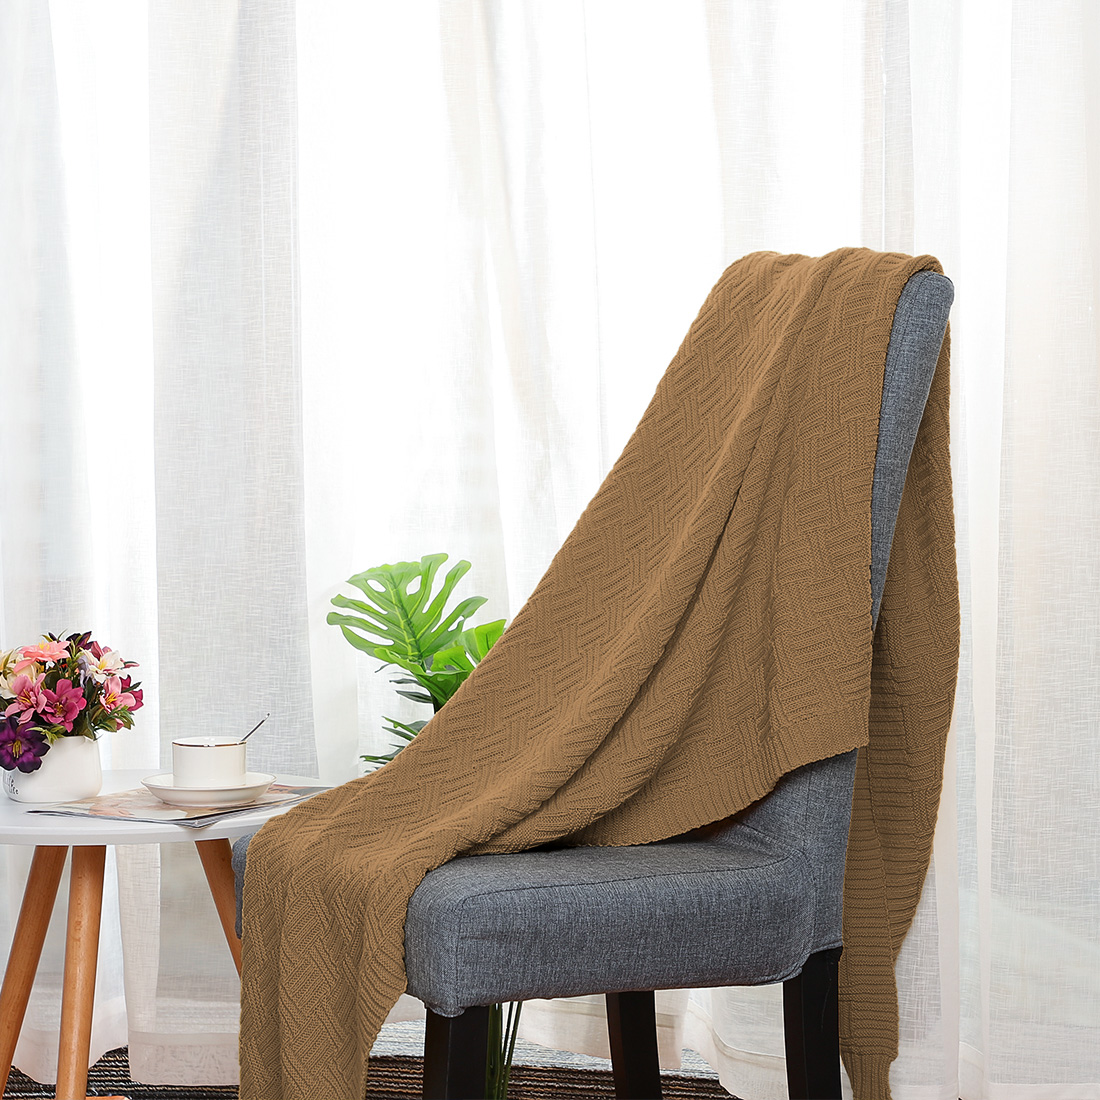 Lightweight-Warm-Soft-100-Cotton-Cable-Knit-Throw-Blanket-Sofa-Bed-Travel-Throw thumbnail 22